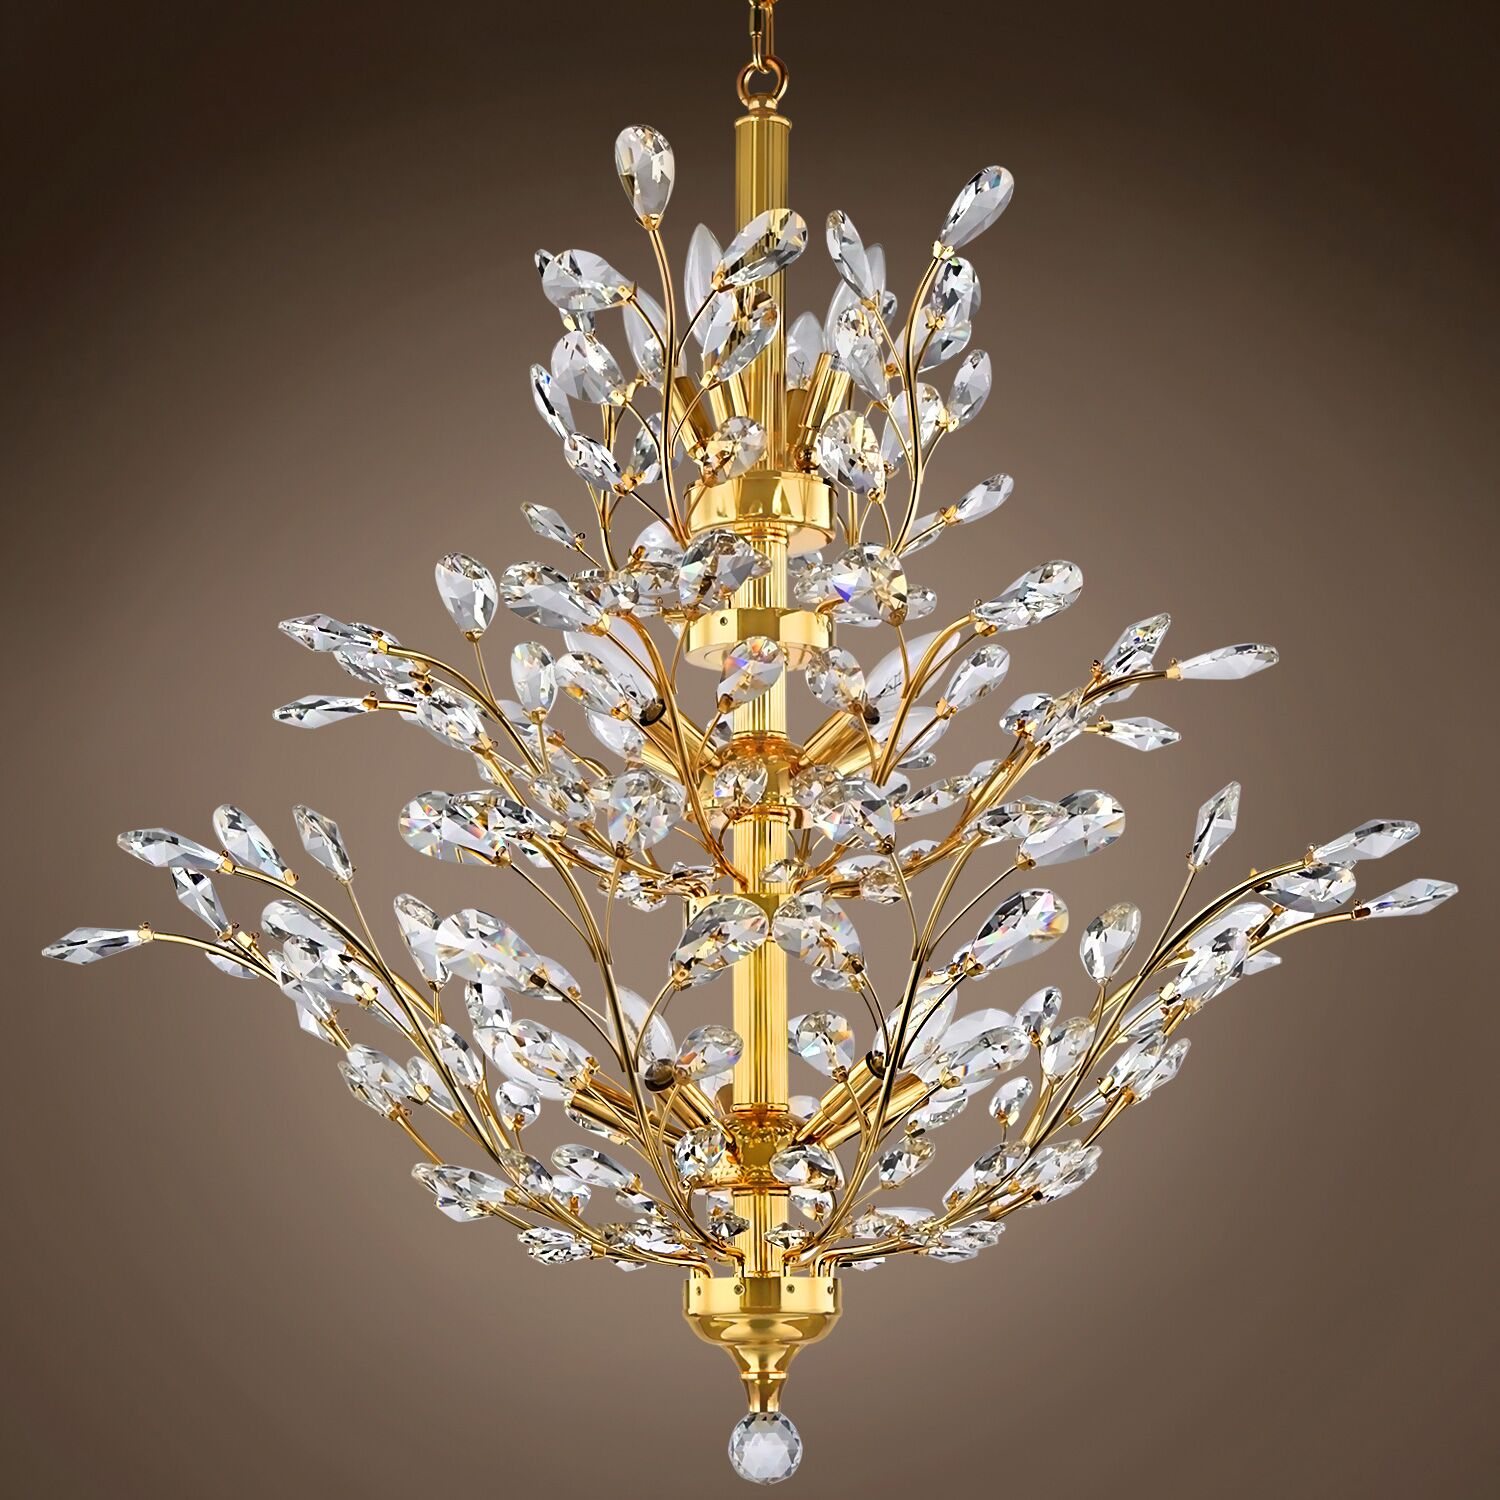 Mendez 10-Light Candle Style Chandelier Crystal Color: Clear, Crystal Grade: European, Bulb Type: LED